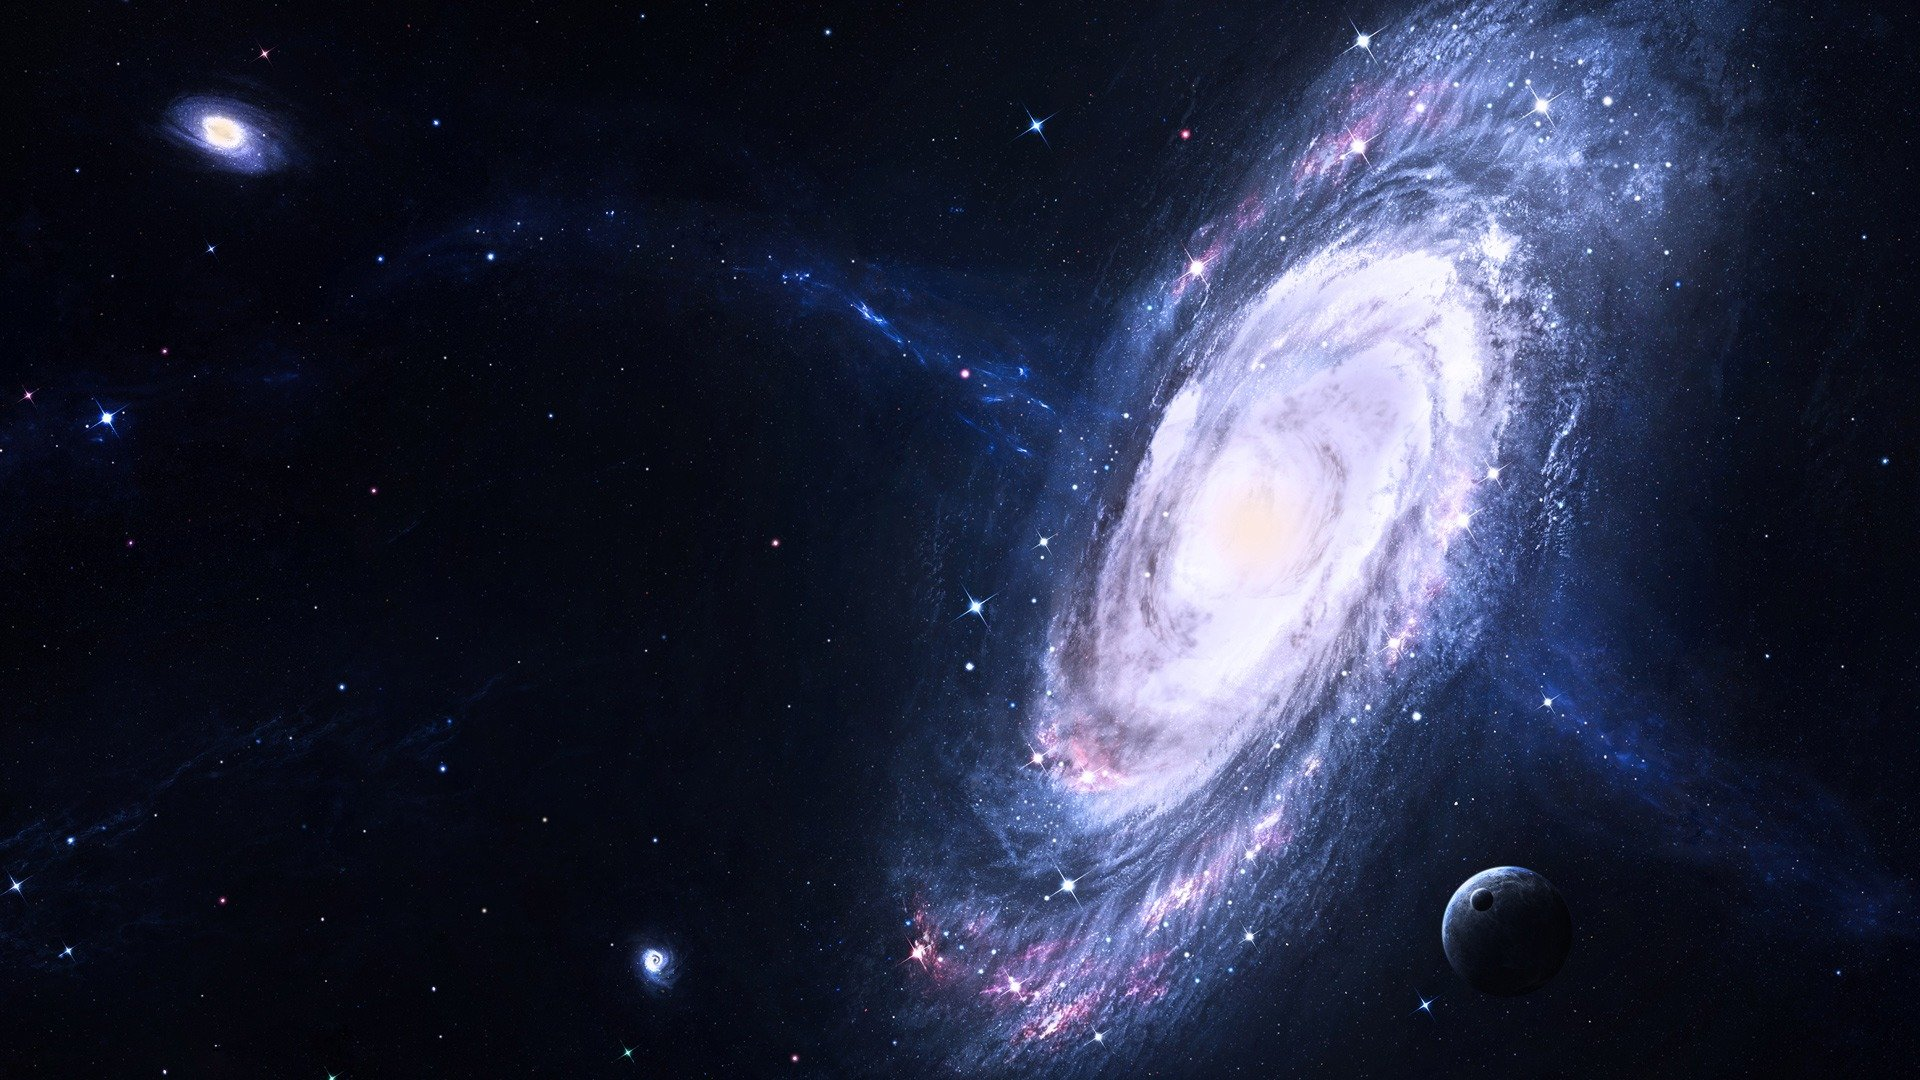 Free Download Astronomers Discover 7 New Galaxies Using Subaru Telescope 1920x1080 For Your Desktop Mobile Tablet Explore 50 Dark Matter Wallpaper Syfy Dark Matter Wallpaper Syfy Dark Matter Wallpapers